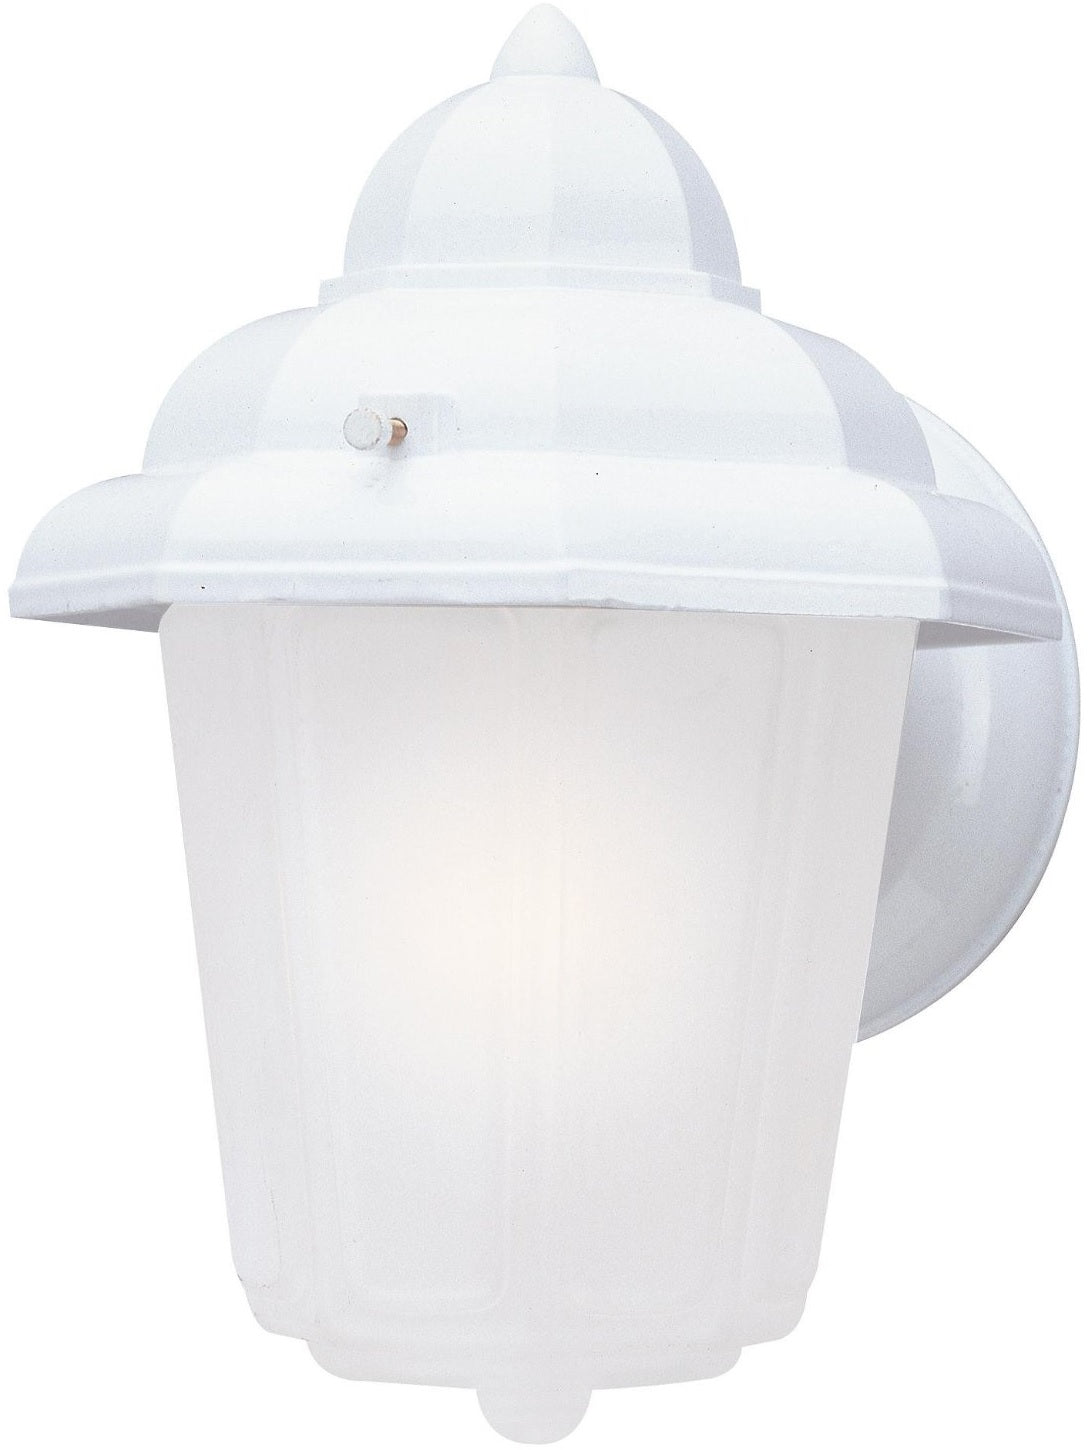 Westinghouse 66879 1-light Outdoor Wall Lantern Fixture, White